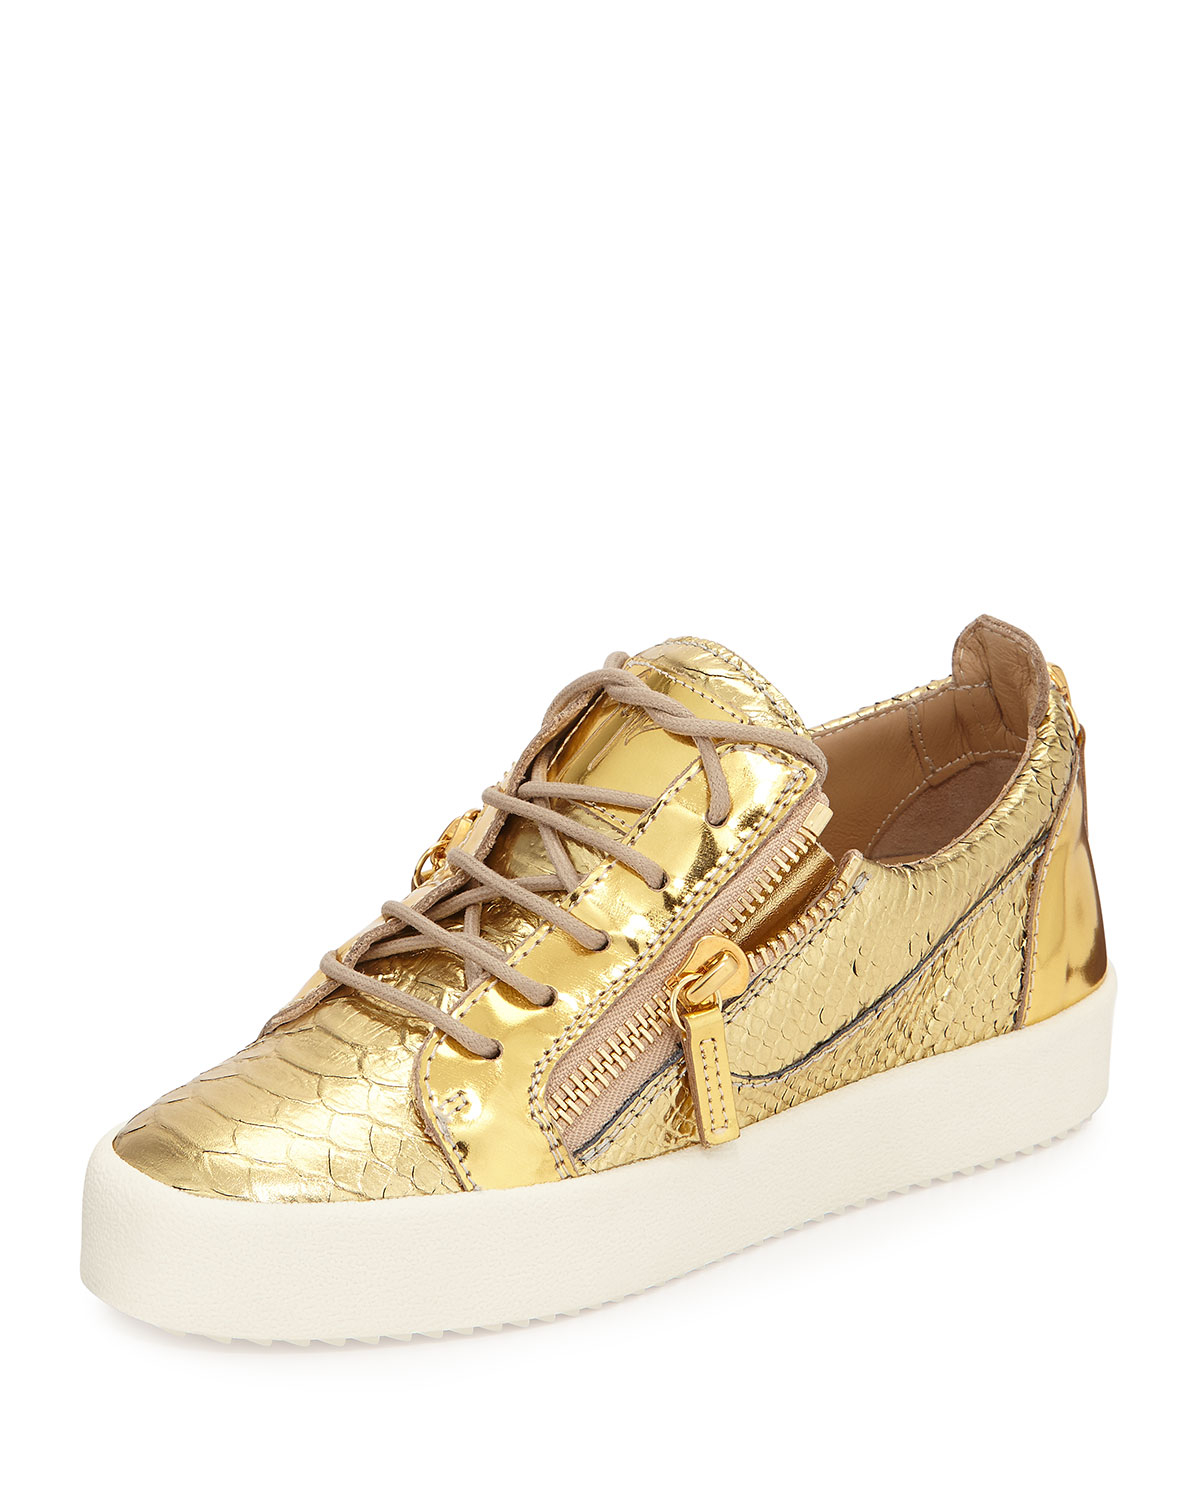 giuseppe zanotti snake embossed metallic sneaker in gold snake lyst. Black Bedroom Furniture Sets. Home Design Ideas